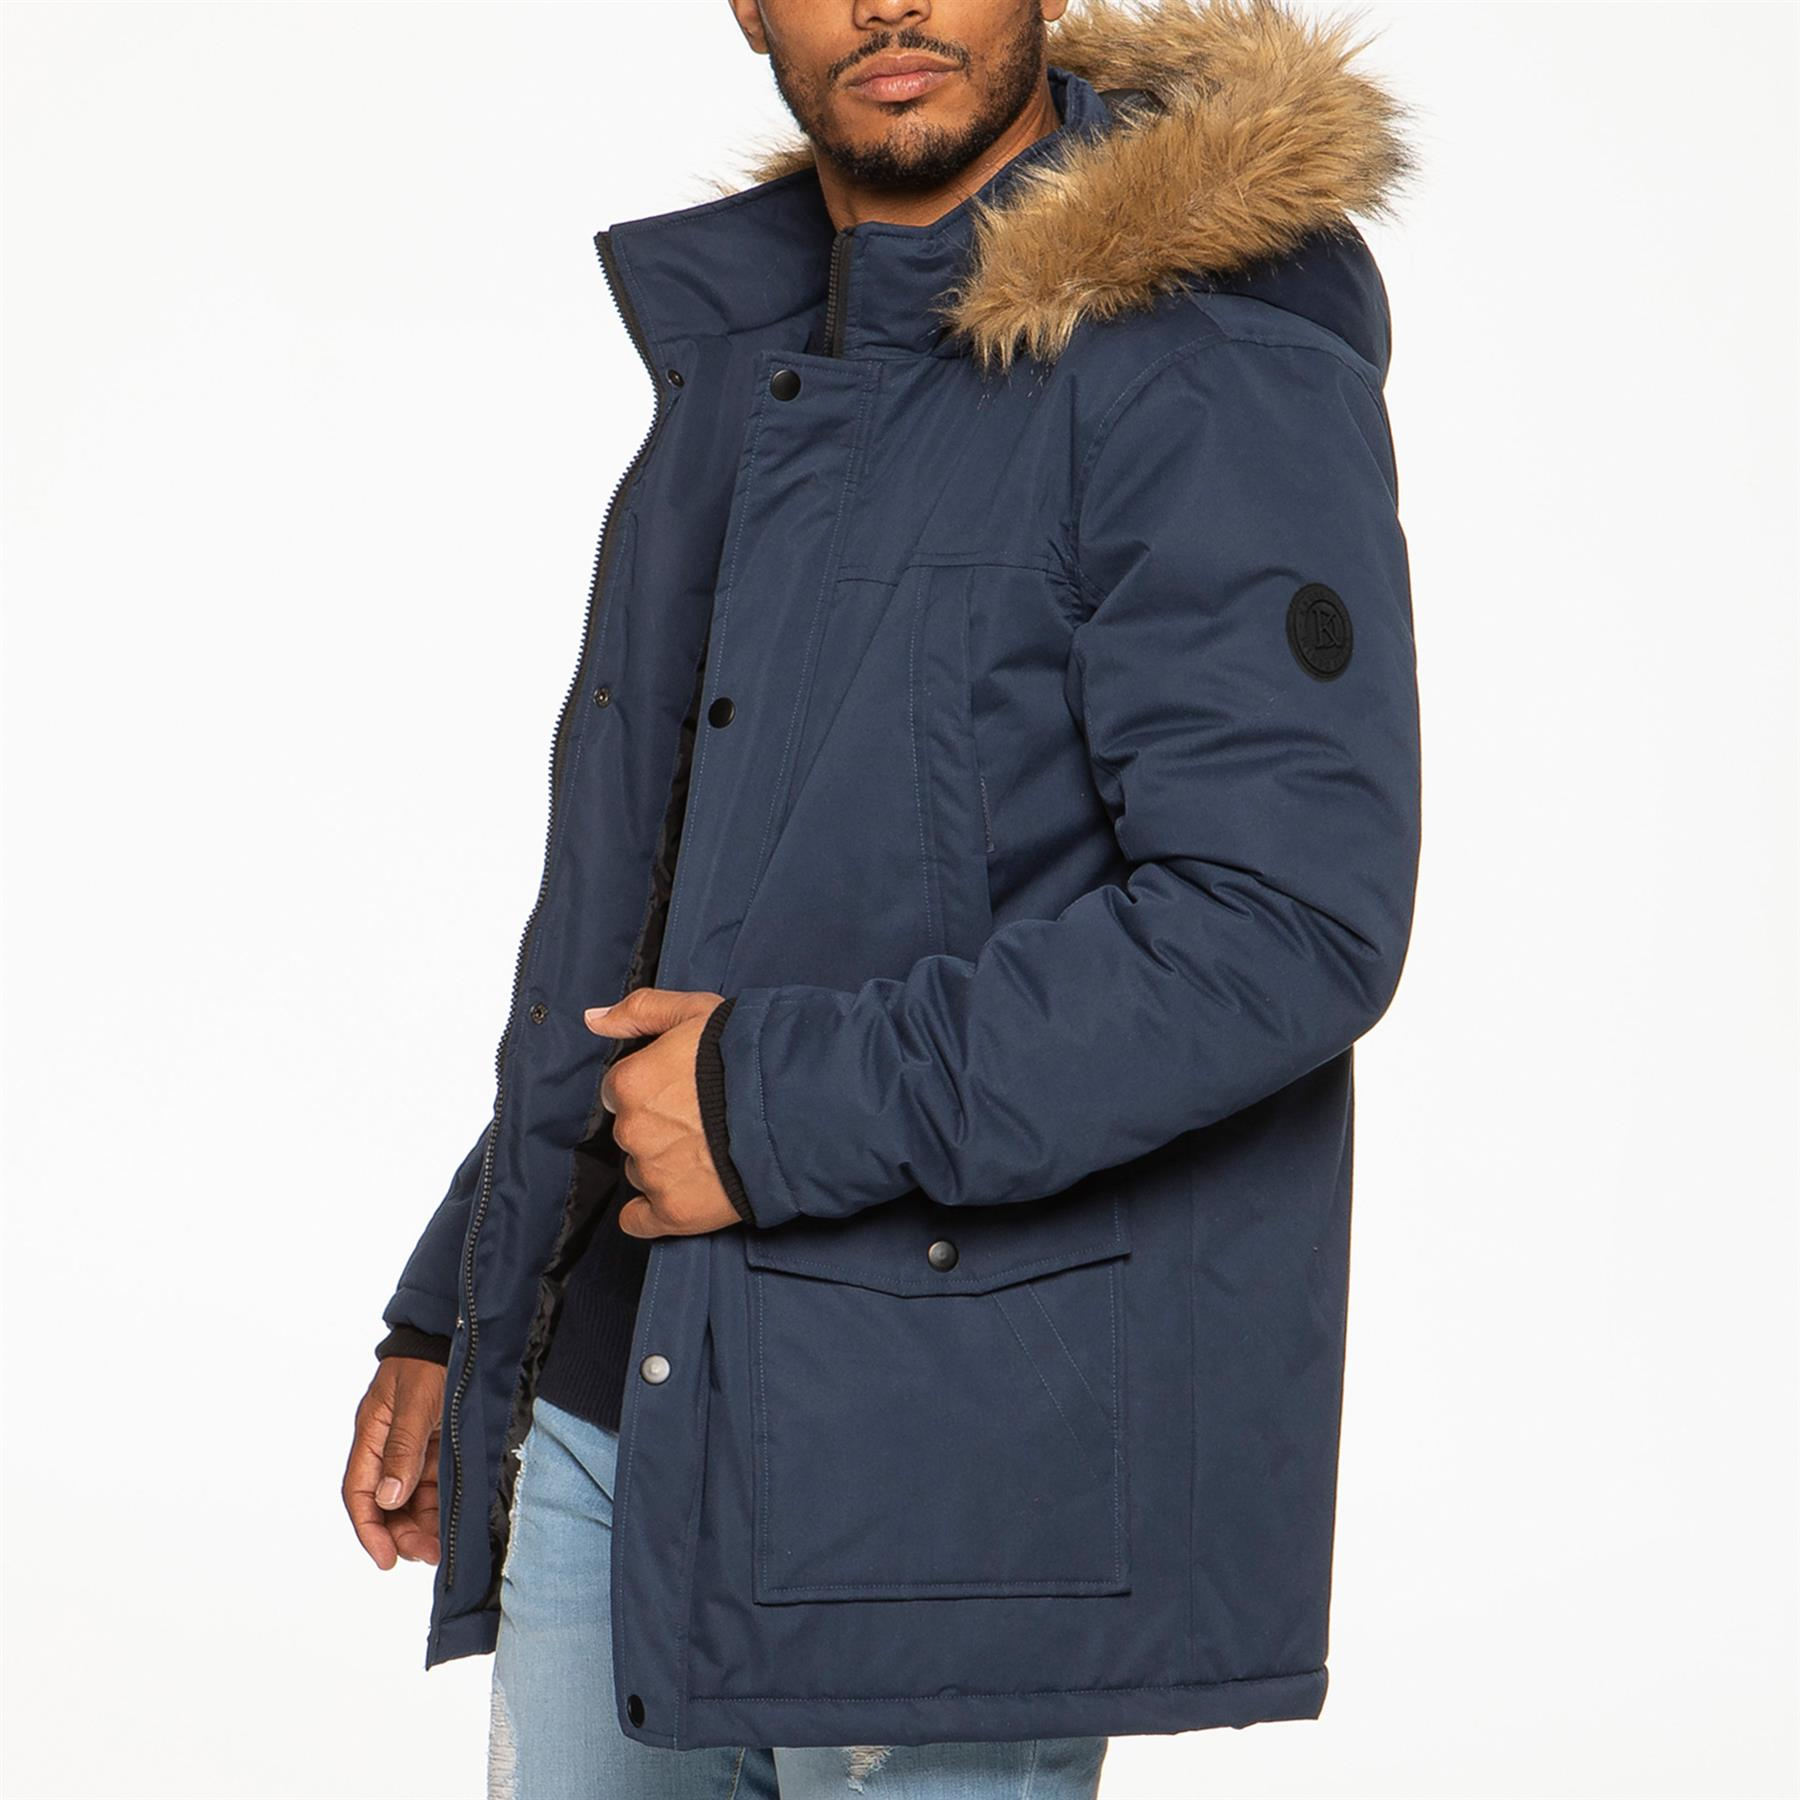 Mens-Parka-Jacket-Faux-Fur-Trimmed-Hooded-Winter-Warm-Long-Padded-Outerwear-Coat thumbnail 7